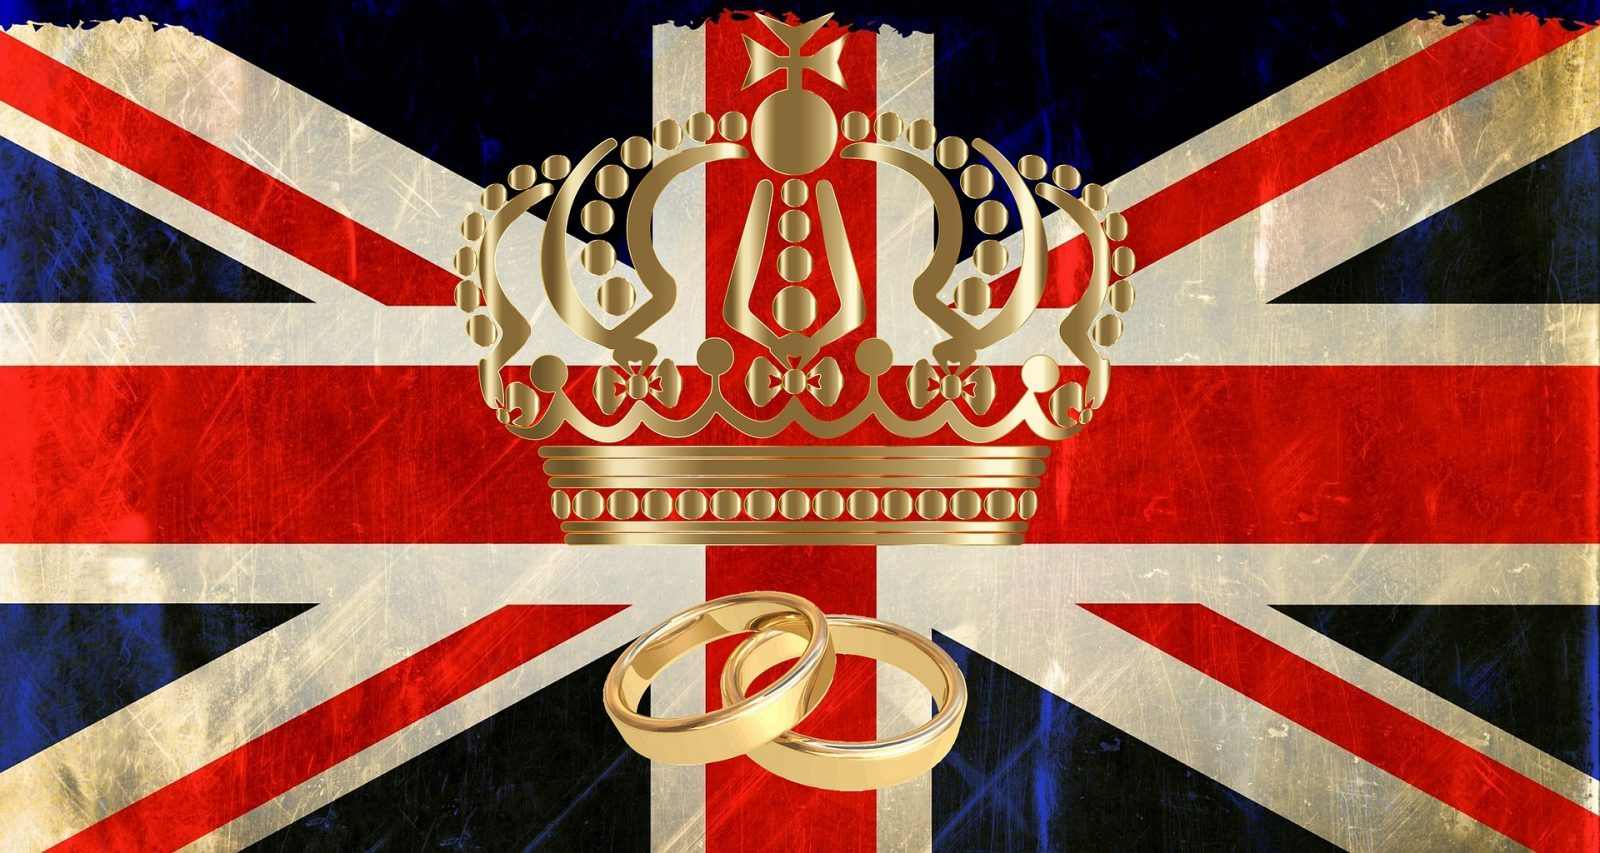 Living Creatively with Fibro | A Union Jack with a gold crown and two wedding rings in front in terms of emotions a Royal Wedding provides all the feels!